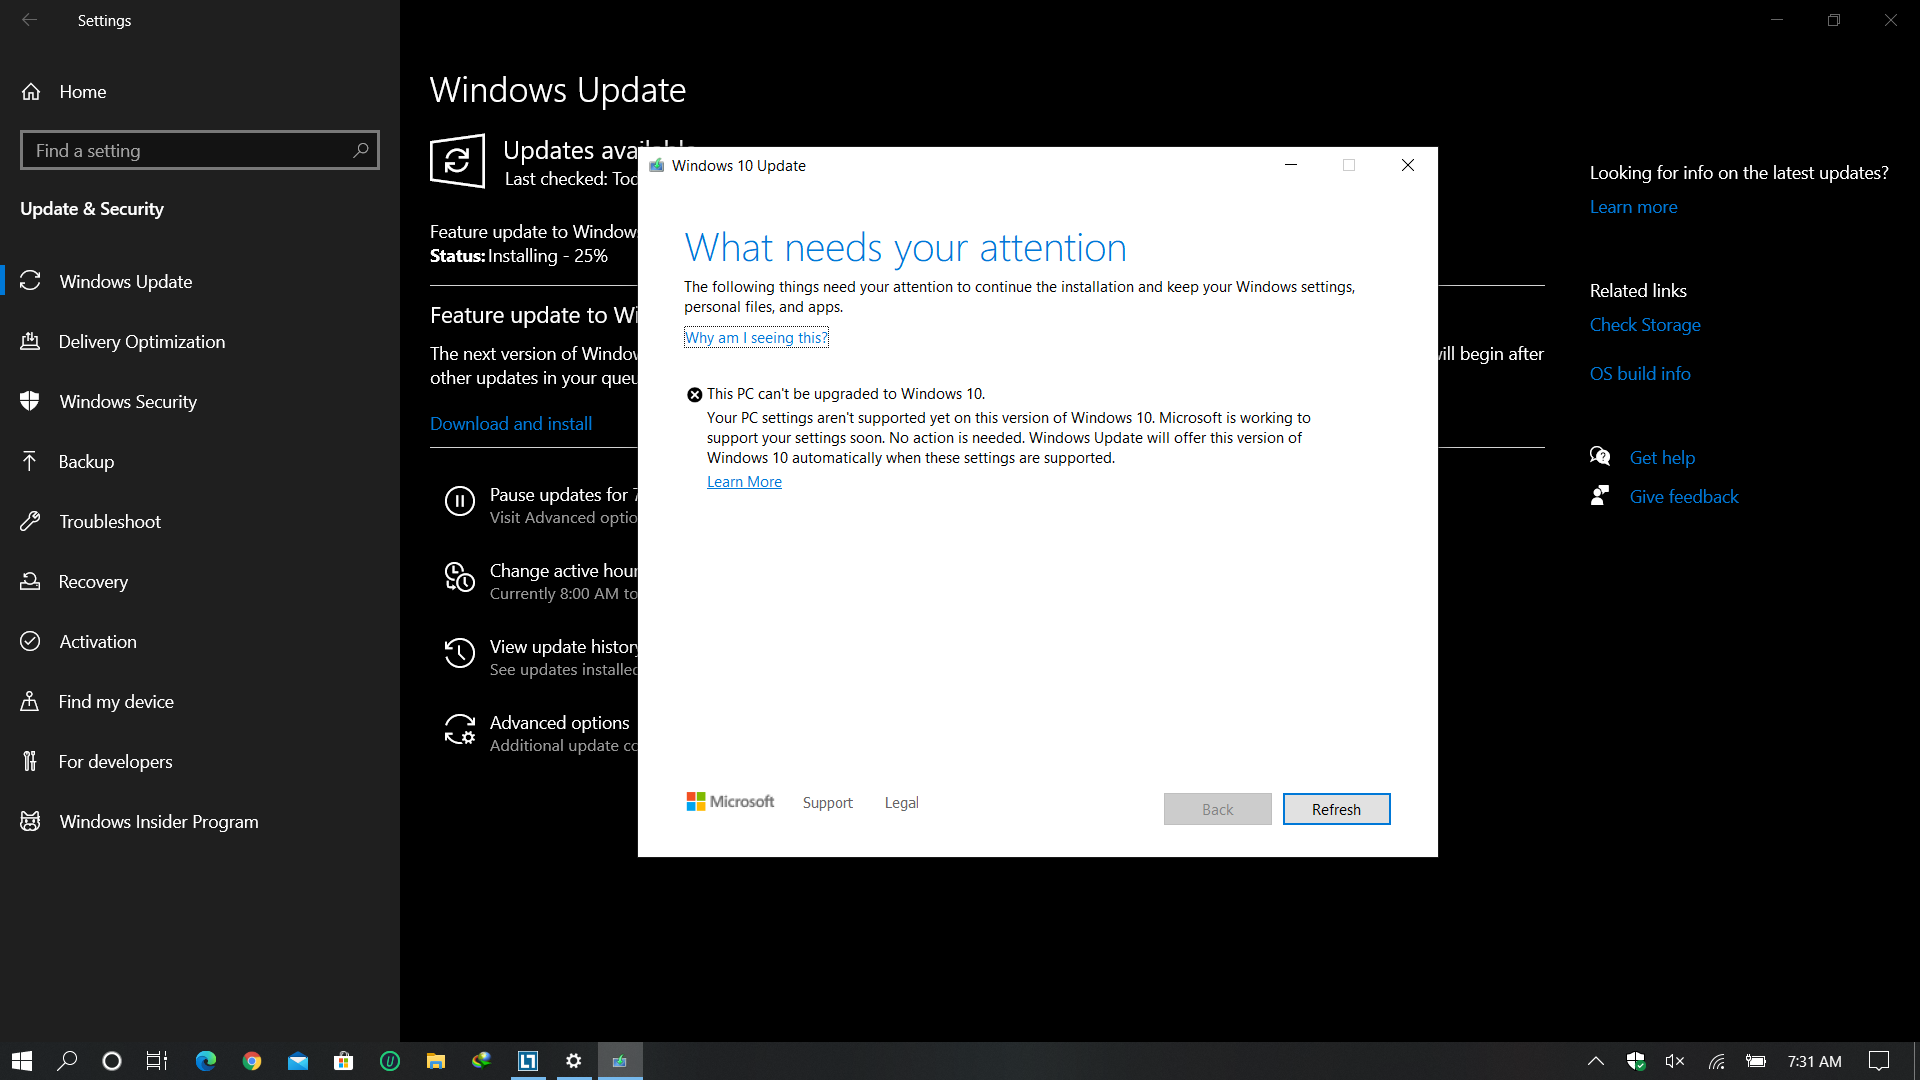 Getting error while updating into windows 2004 574d8ebd-9930-4bf5-8fdd-0ee2bb38e0aa?upload=true.png